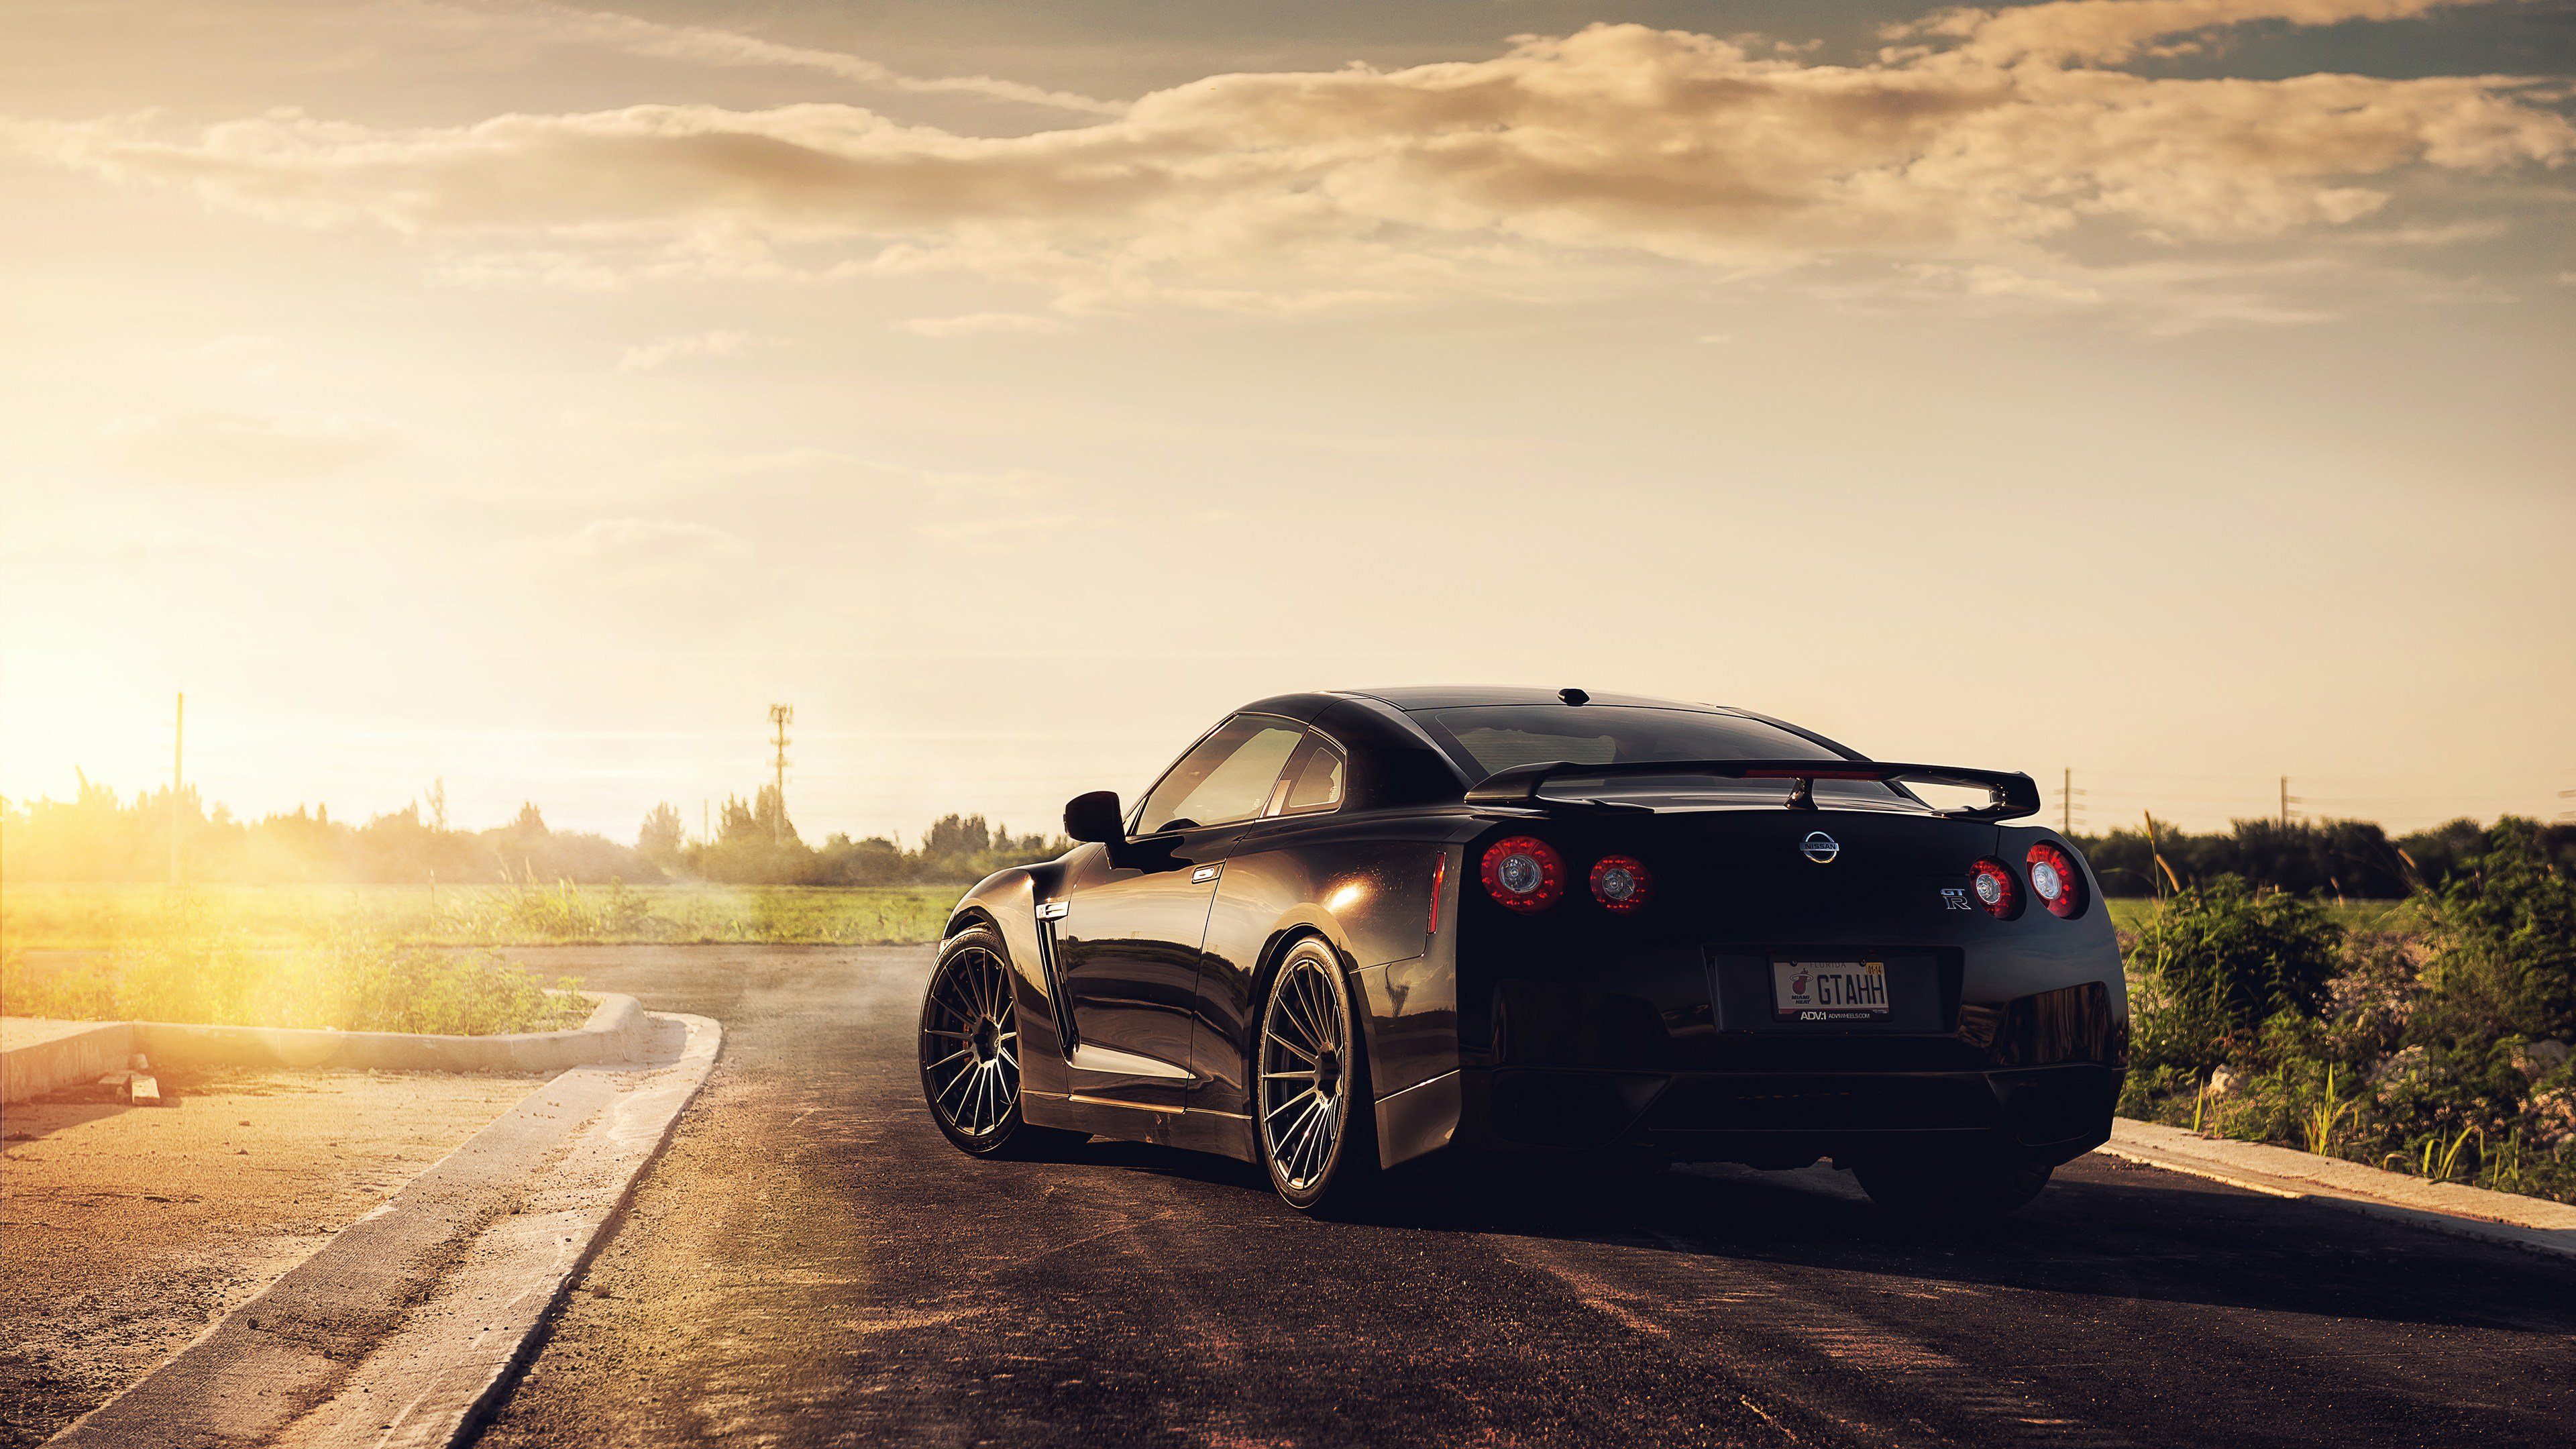 Top 10 Best 4K Ultra HD Cars Wallpapers For Windows 87XP [Download 3840x2160